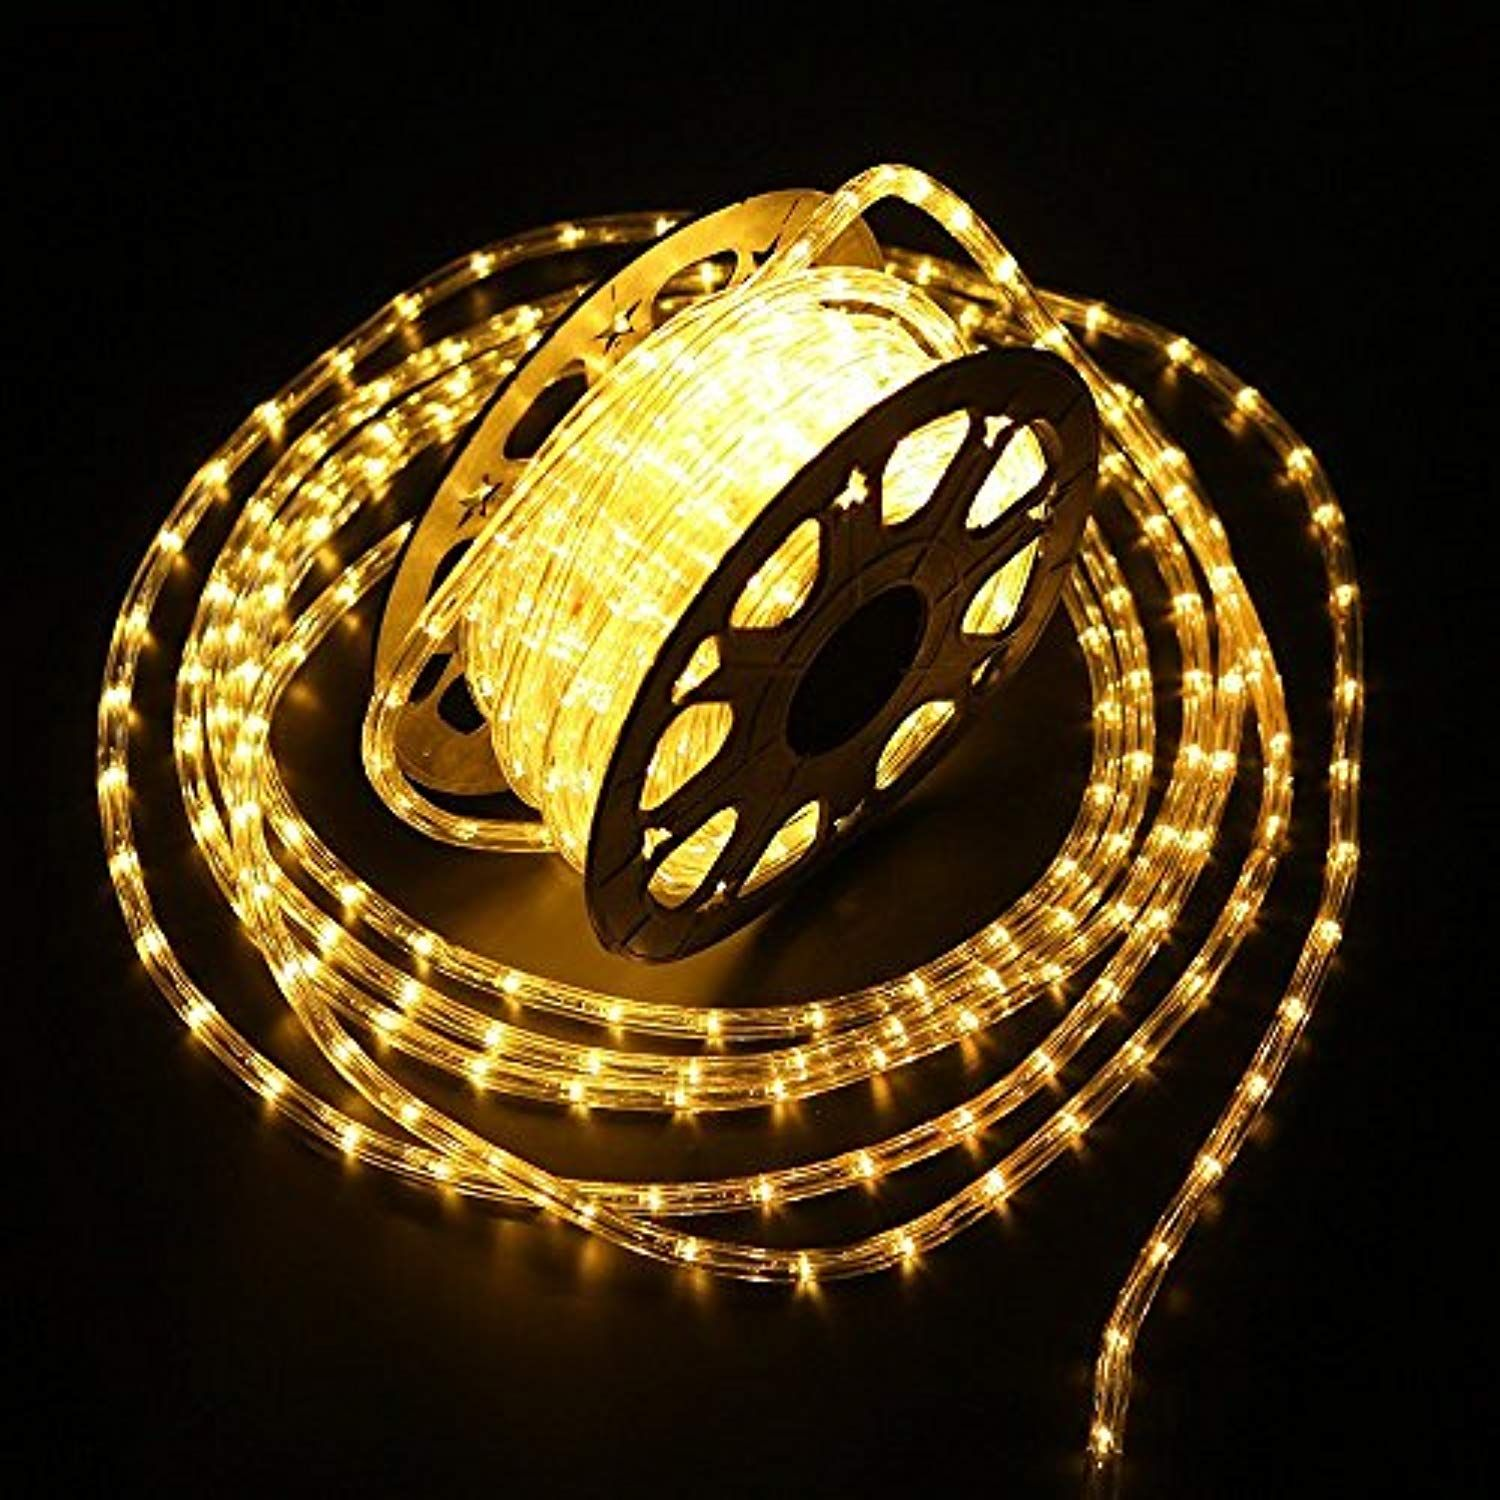 Yuliang 100 Feet 1 2 Thick 110v 2 Wire Waterproof Led Rope Light Kit For Background Lighting Christmas Lighting Bridges Ea Led Rope Lights Led Rope Rope Light